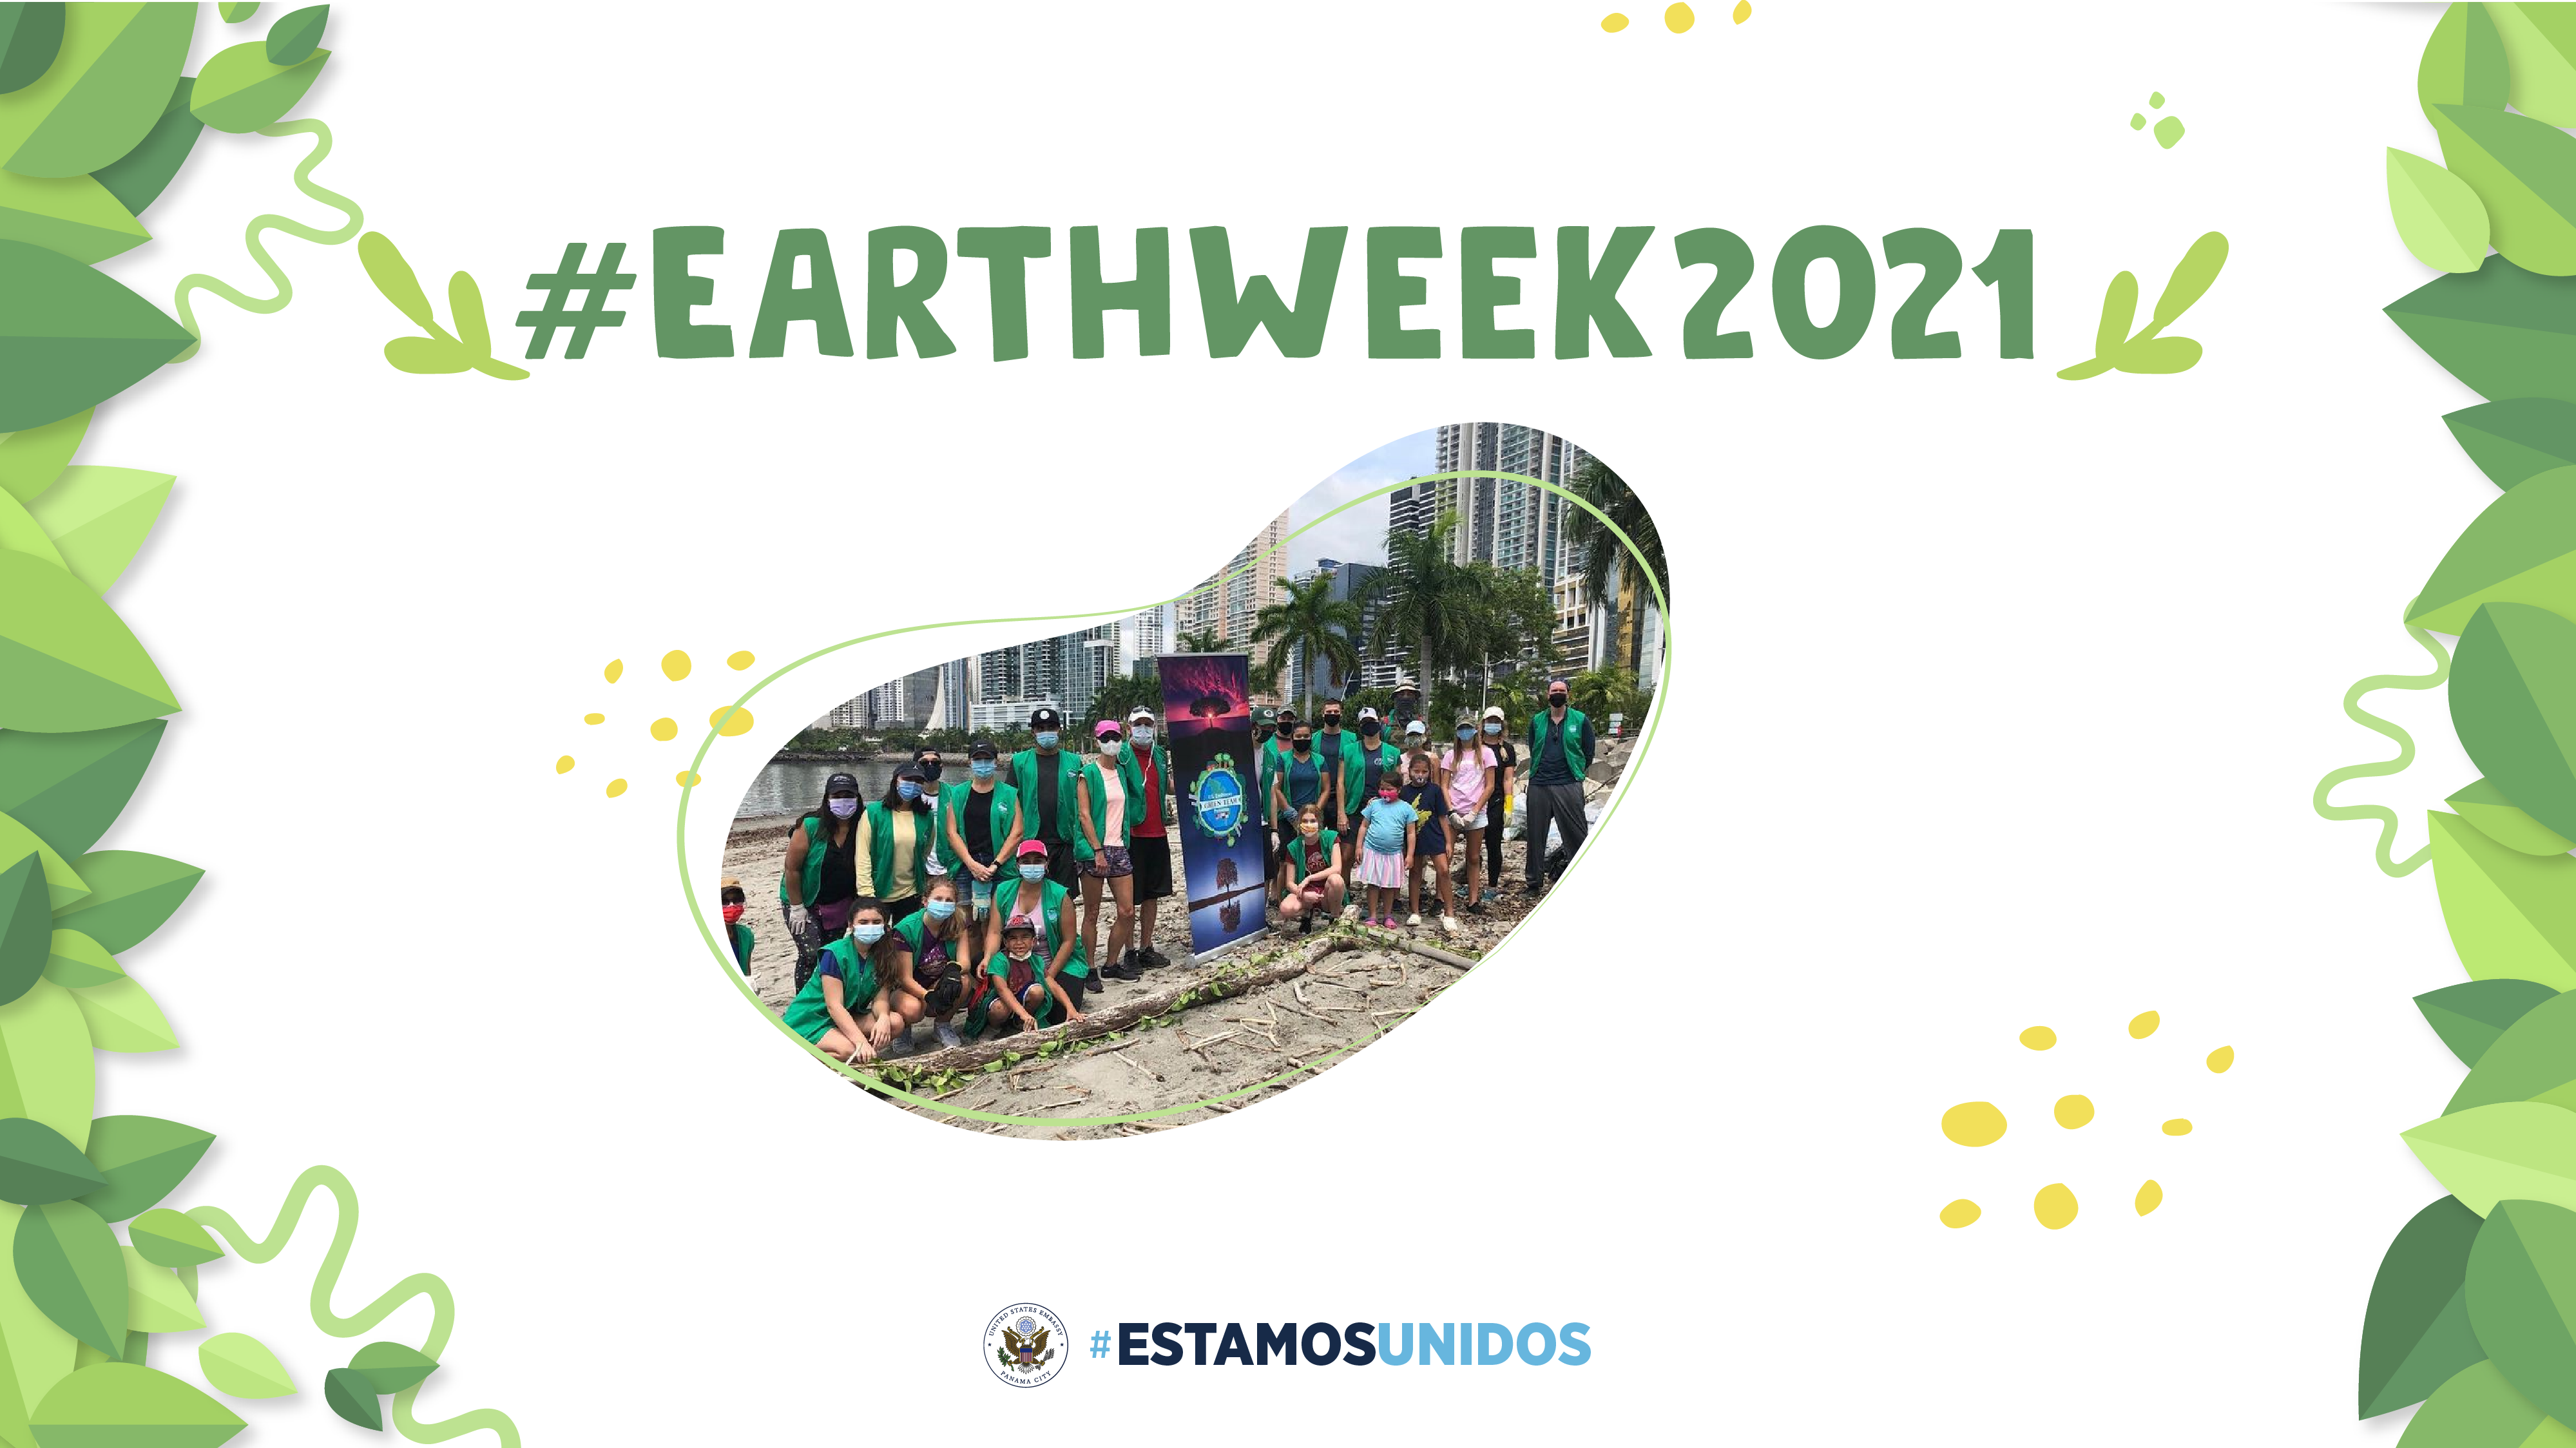 Earth Week 2021